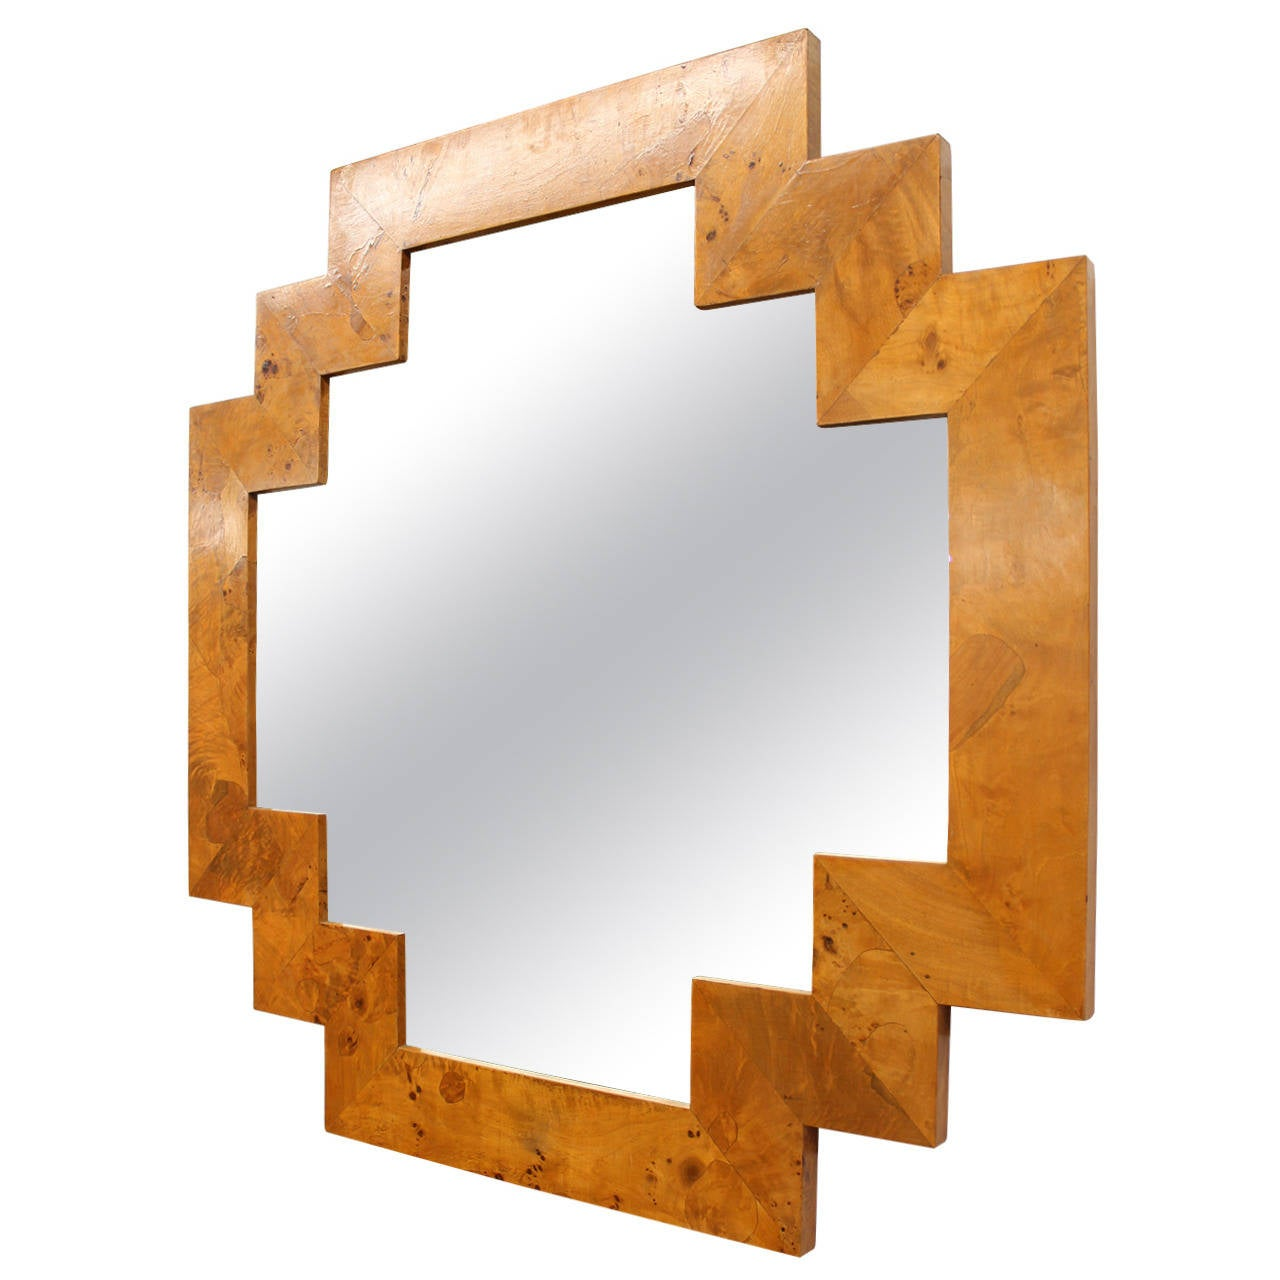 Geometric Wall Mirror art deco style geometric italian burl wood wall mirror at 1stdibs